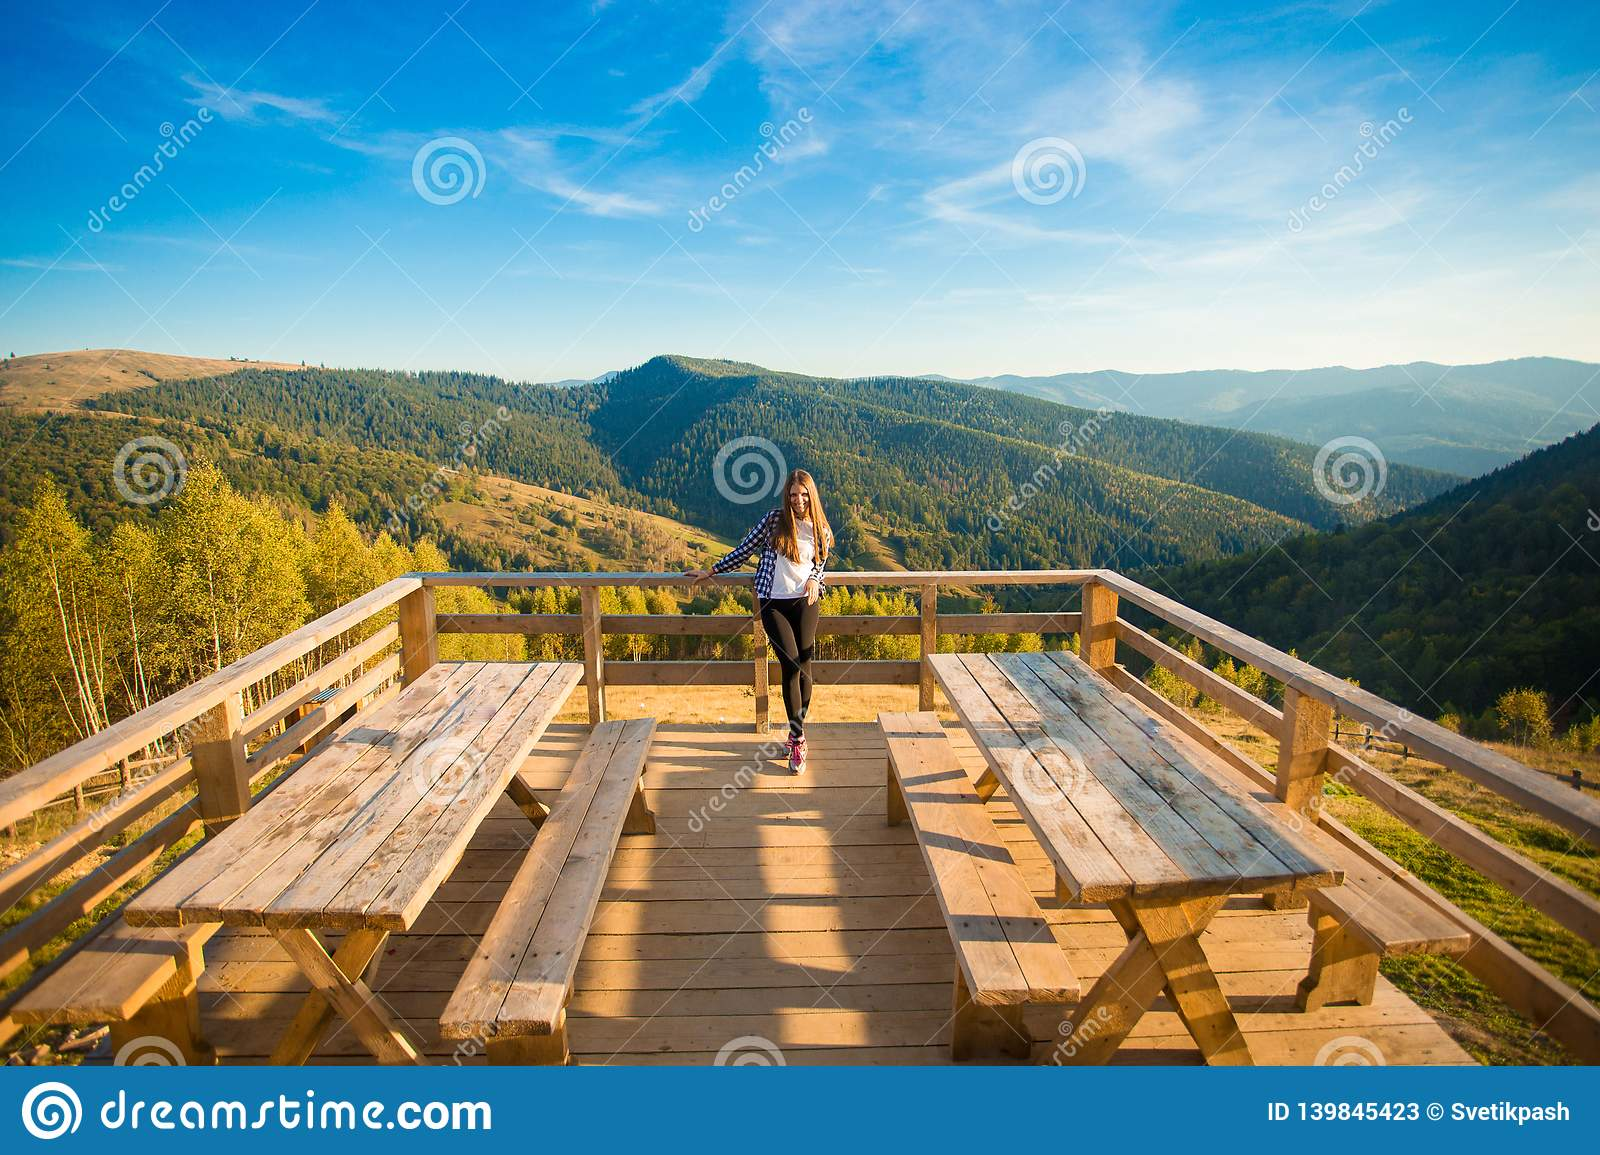 Young woman with long hair on fence of wooden terrace enjoy beautiful view of mountains